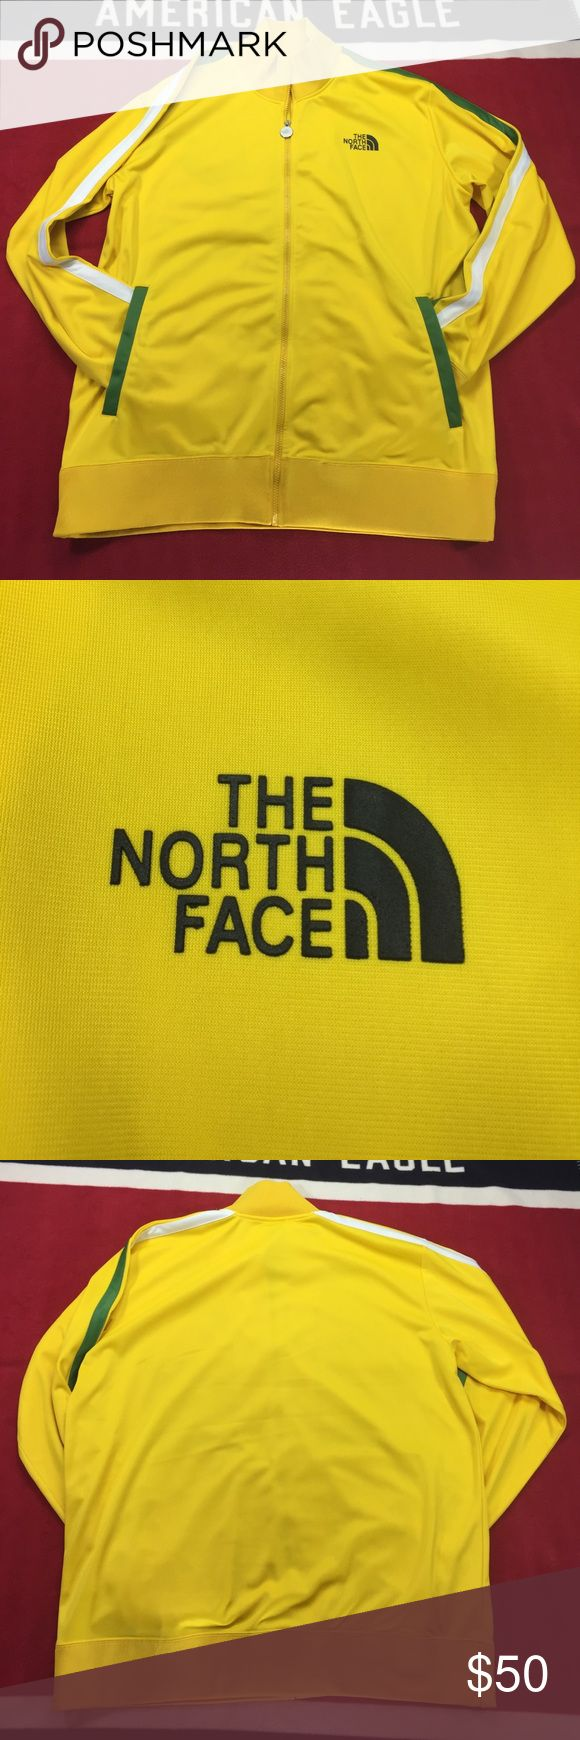 The North Face Men's Jacket vibrant yellow color EUC only worn a couple times The North Face Jackets & Coats